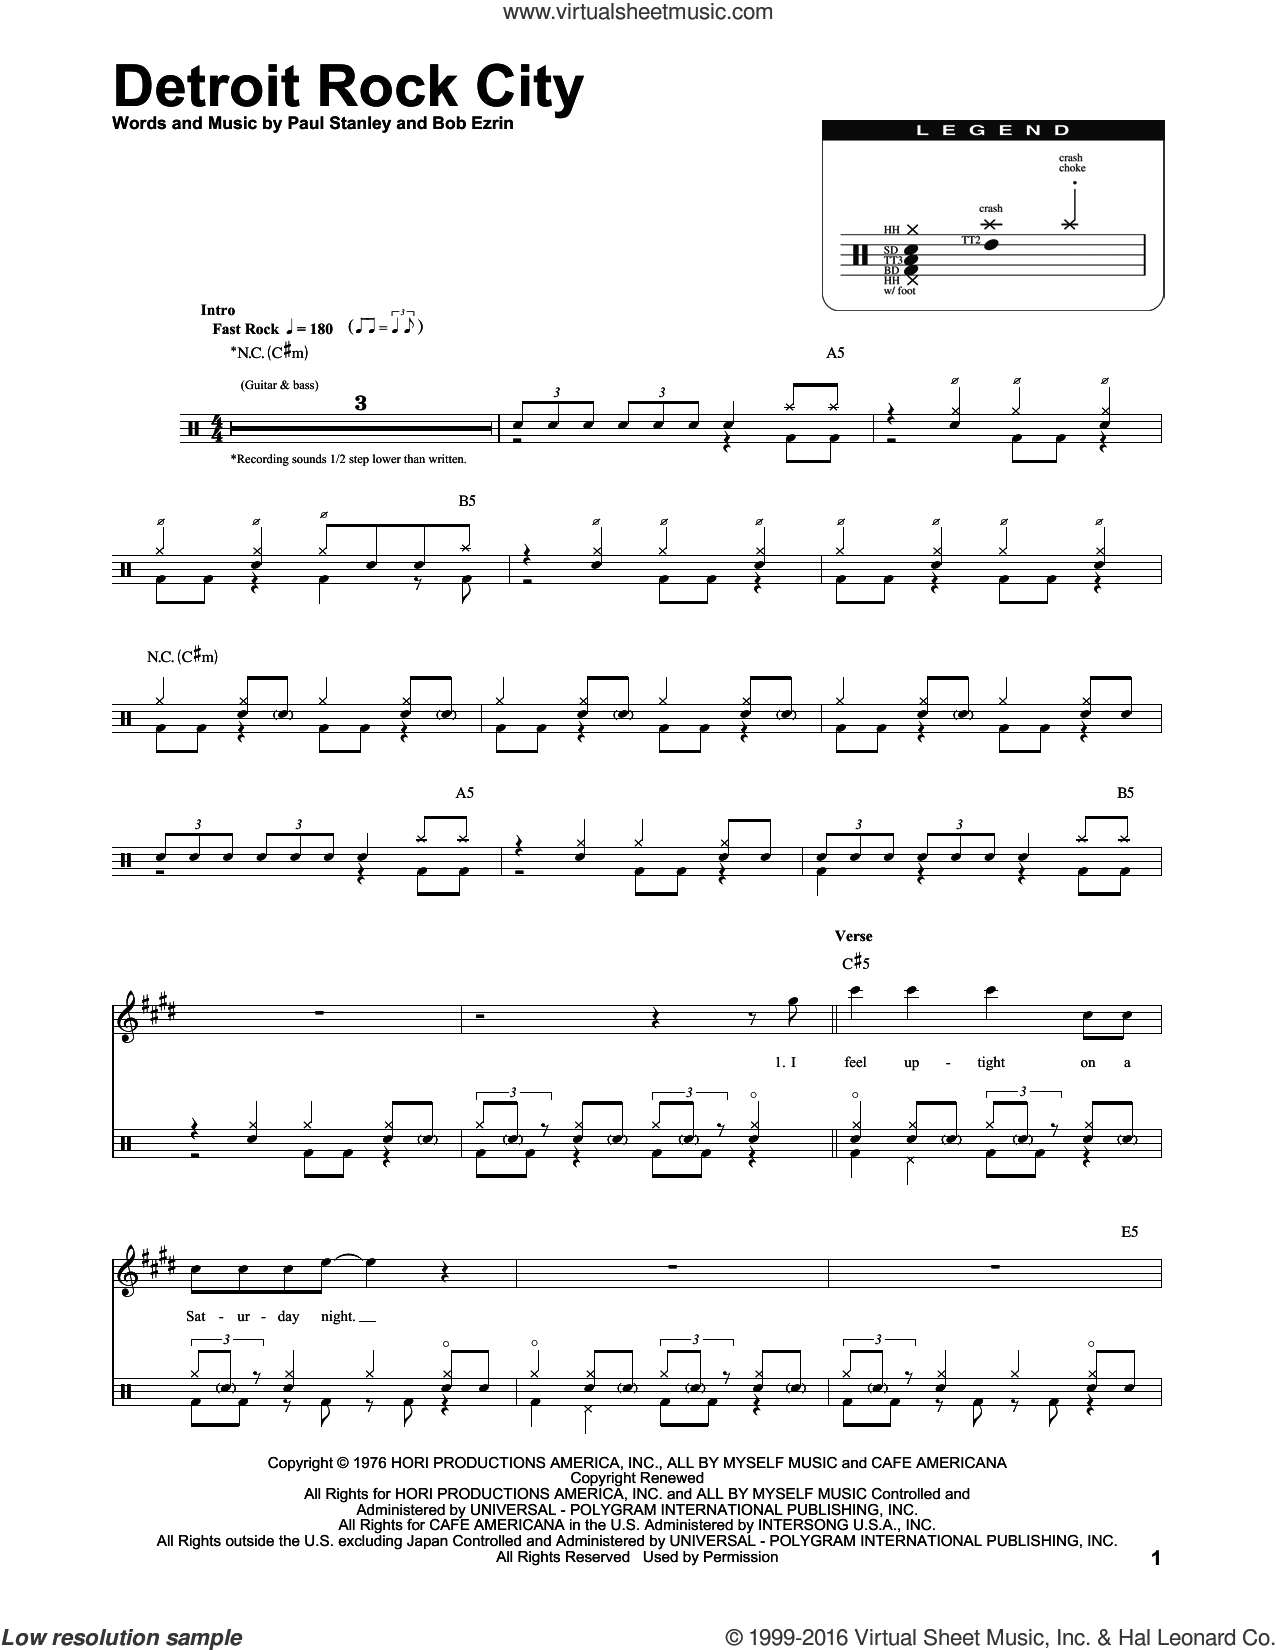 Detroit Rock City sheet music for drums by Paul Stanley, KISS and Bob Ezrin. Score Image Preview.